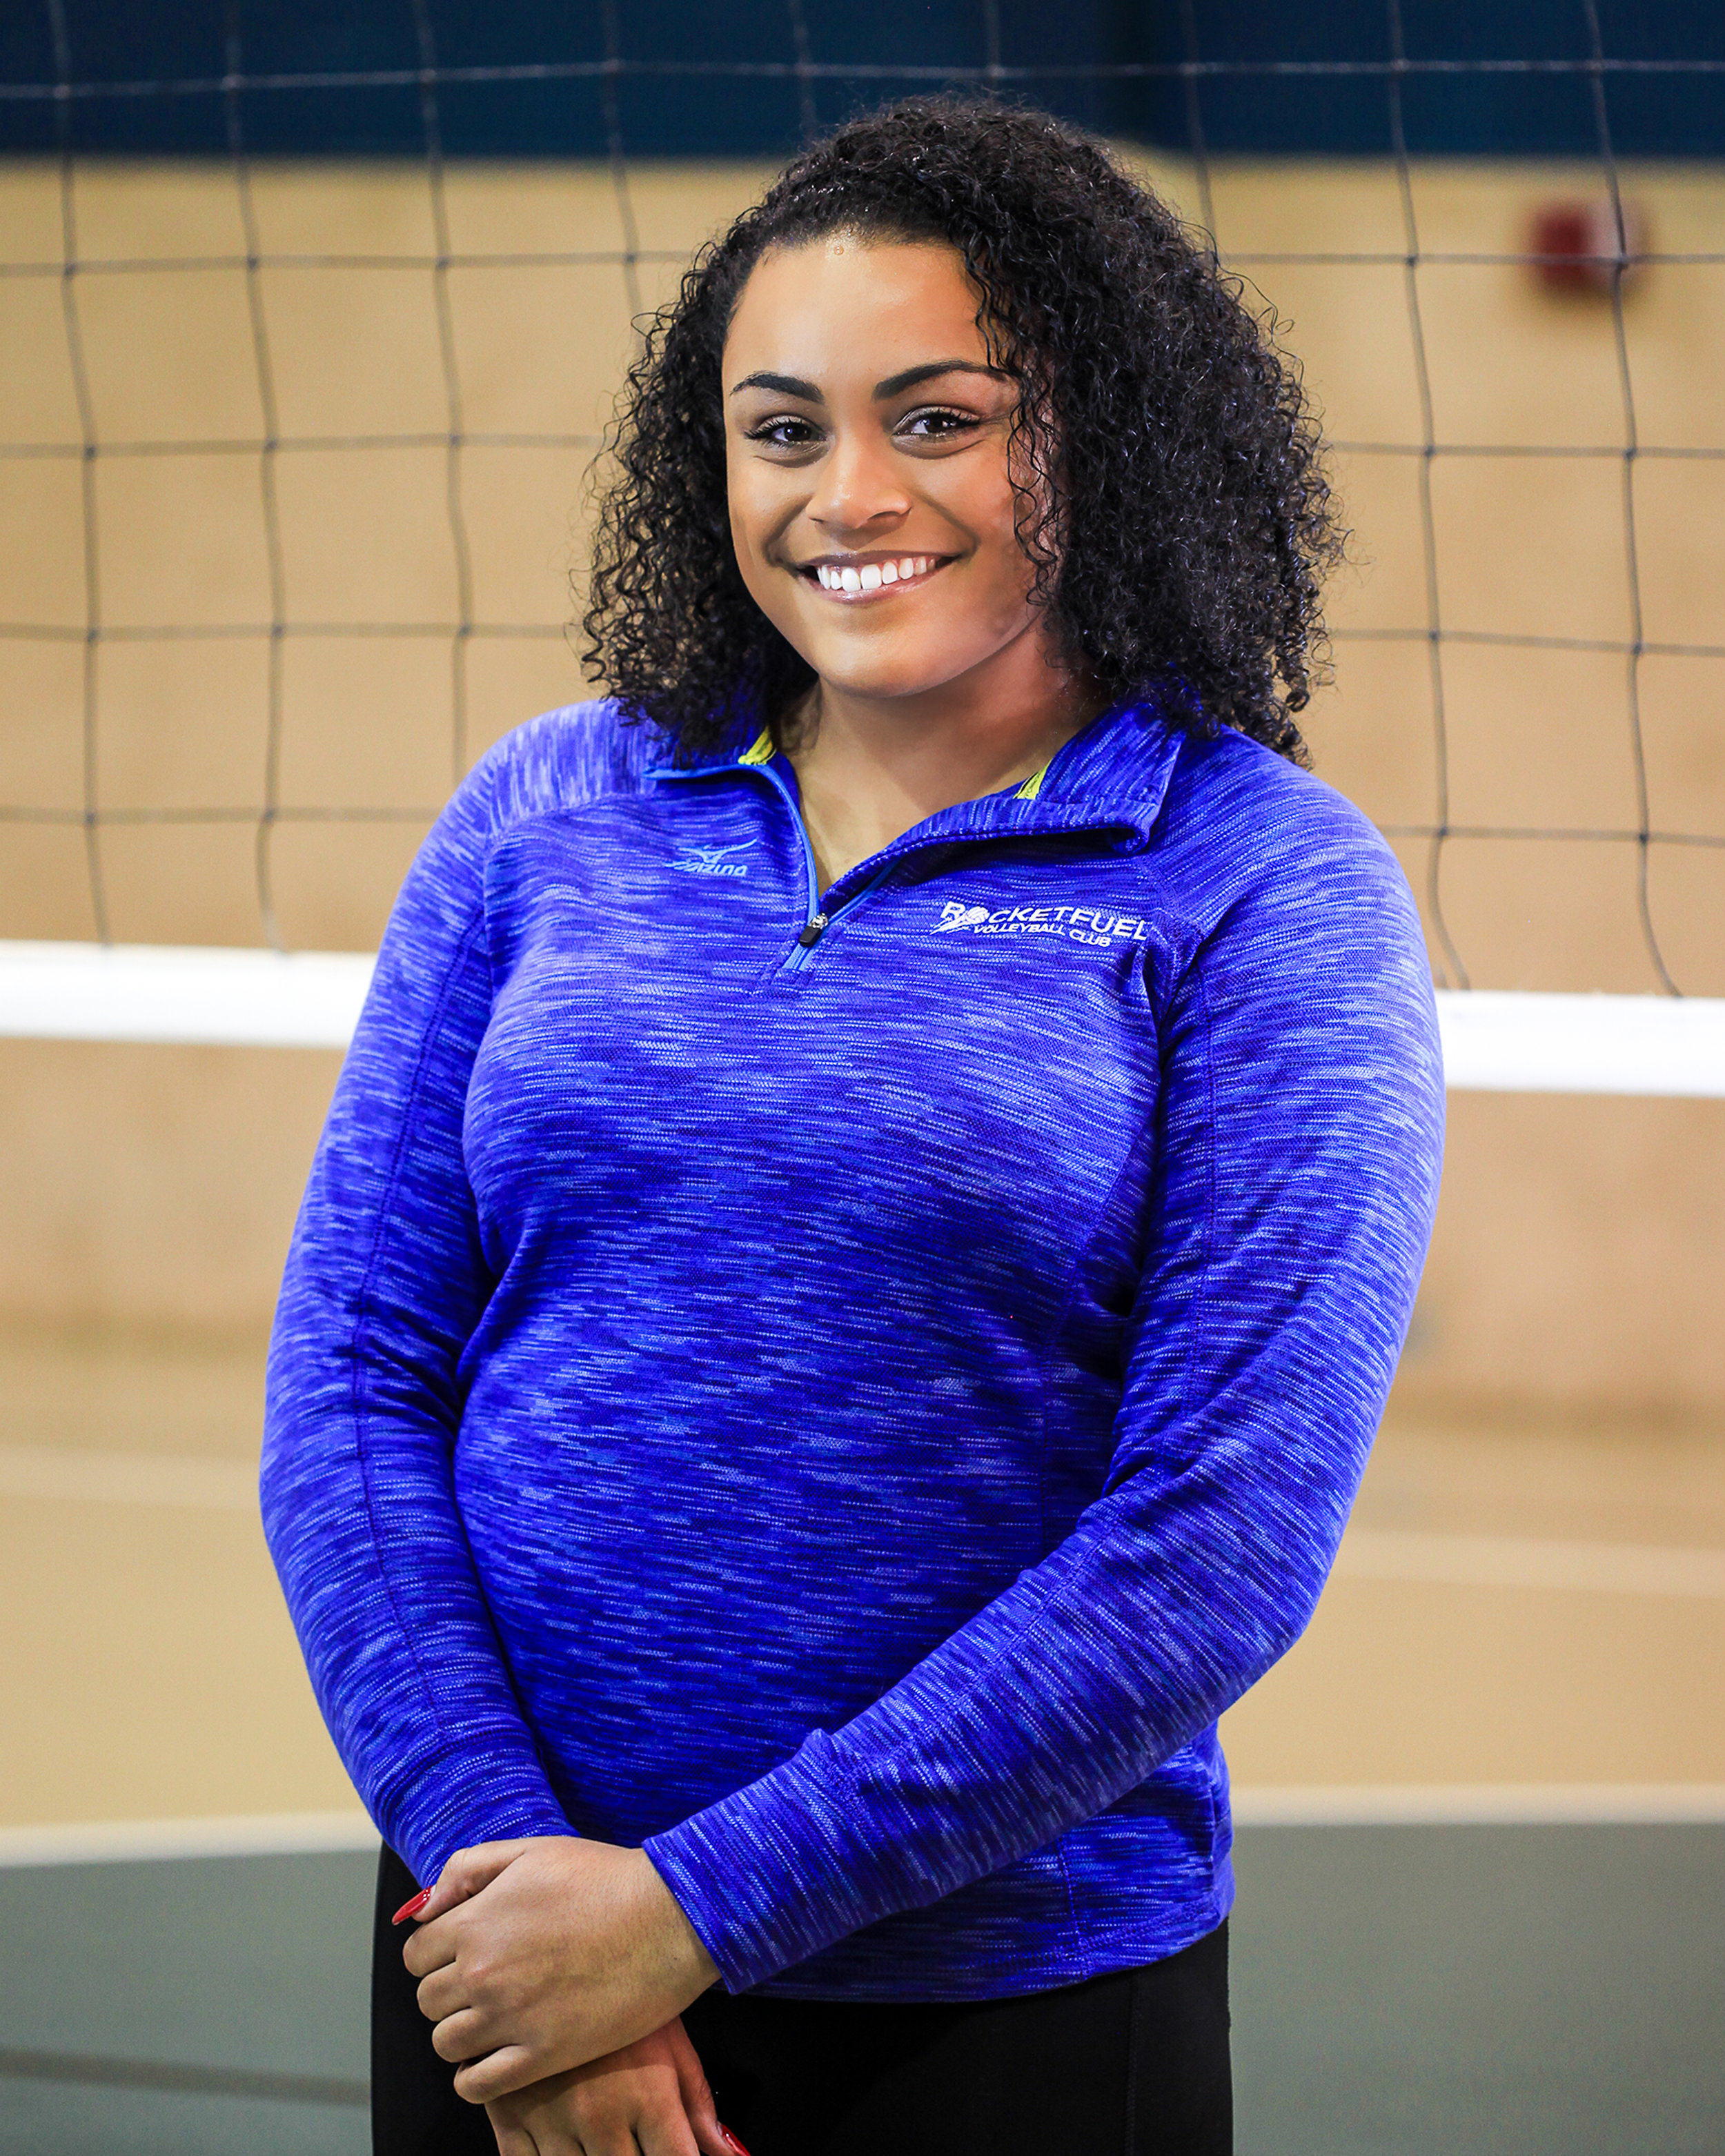 Desiree Frey - Desiree Frey joined our Shreveport RocketFuel Volleyball program in the 2017-18 season. She is a graduate of Centenary College with a degree in Business Administration. Frey is currently the Head Coach of Byrd High School's volleyball program.Frey has been playing volleyball since she was 8 years old. She has played club volleyball since she was 11 years old. She played all 4 years on Centenary Ladies volleyball team where she had a successful career.-2017 - 2nd Team All Conference volleyball player-First Centenary College all-conference volleyball player-First Ladies volleyball player to reach 1,000 kills and 1,000 digs in a career at Centenary-1st Place in Centenary College history for Kill Attempts-2nd Place in Centenary College history for Kills-2nd Place in Centenary College history for Digs